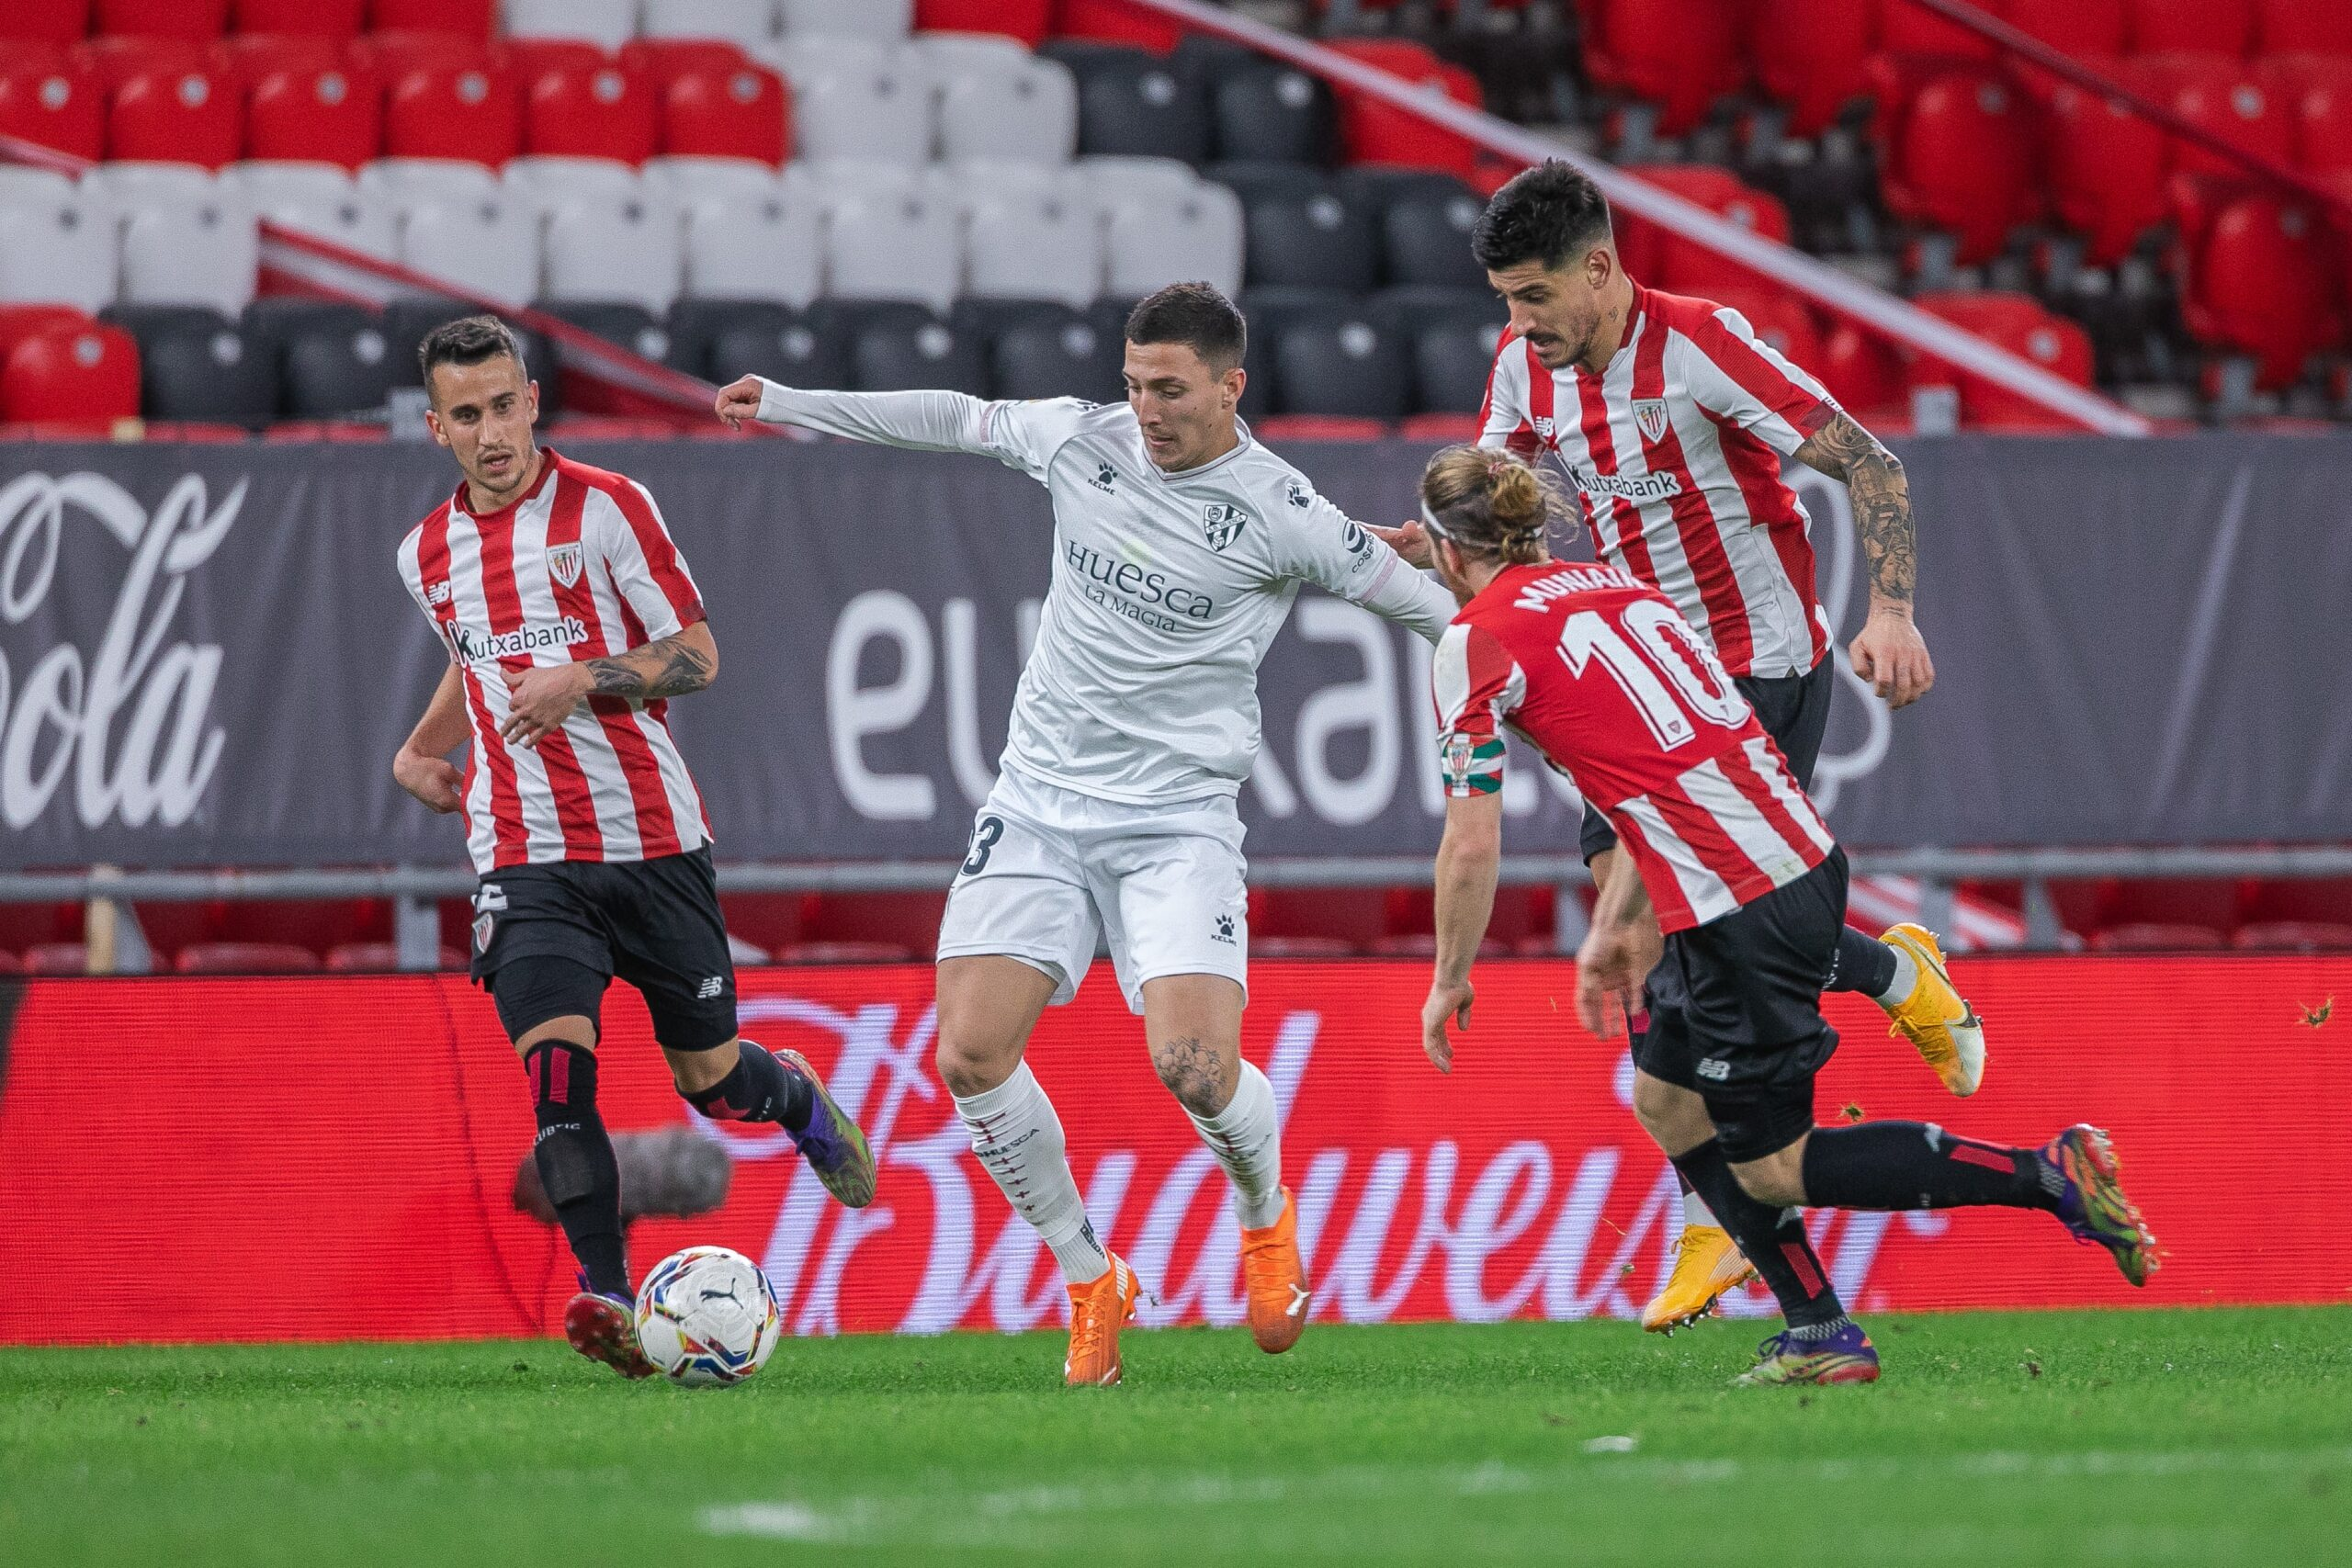 Cara a Cara: SD Huesca – Athletic Club